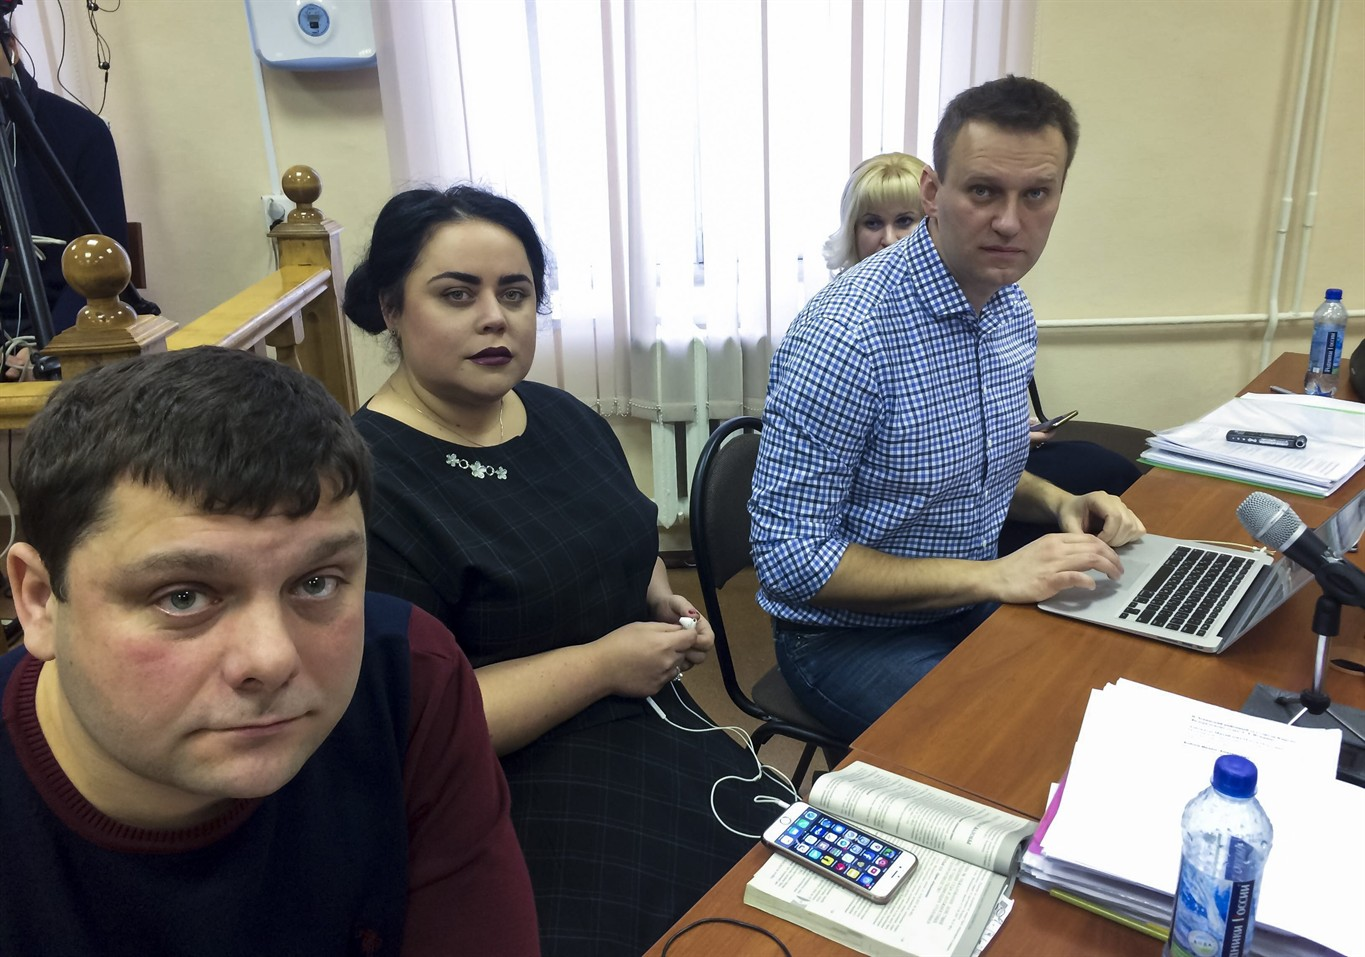 In this handout photo provided by Alexei Navalny press service Russian opposition leader Alexei Navalny, right, his former colleague Pyotr Ofitserov, left, and lawyer Svetlana Davydov, second left, sit in a courtroom in Kirov, Russia, Wednesday, Feb. 1, 2017. A retrial of Alexei Navalny for alleged embezzlement continues in the provincial city of Kirov after the original 2013 guilty verdict was overturned by the Supreme Court. (Alexei Navalny Press Service via AP)